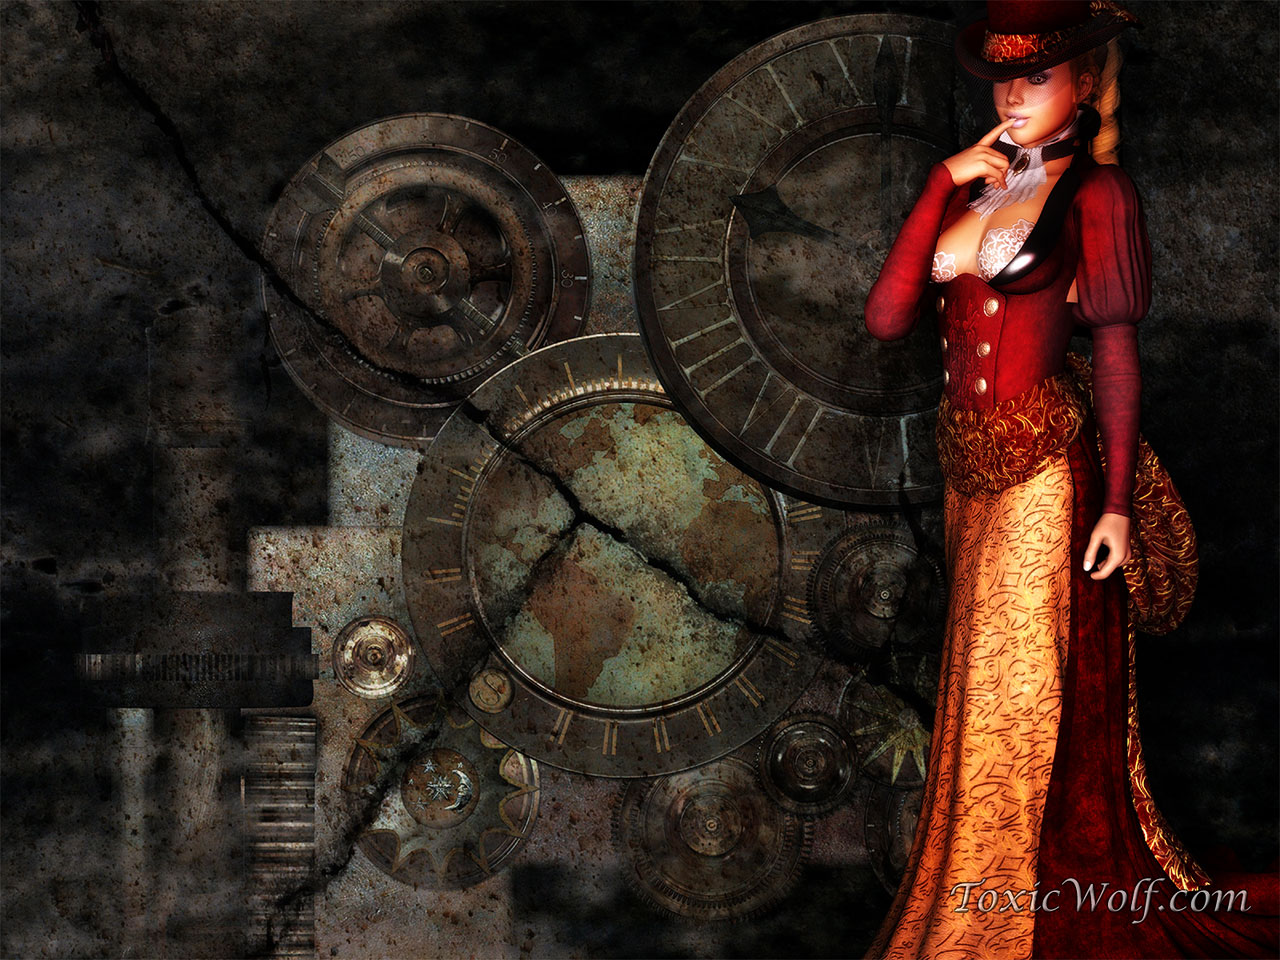 Steampunk Wallpaper 1280x960